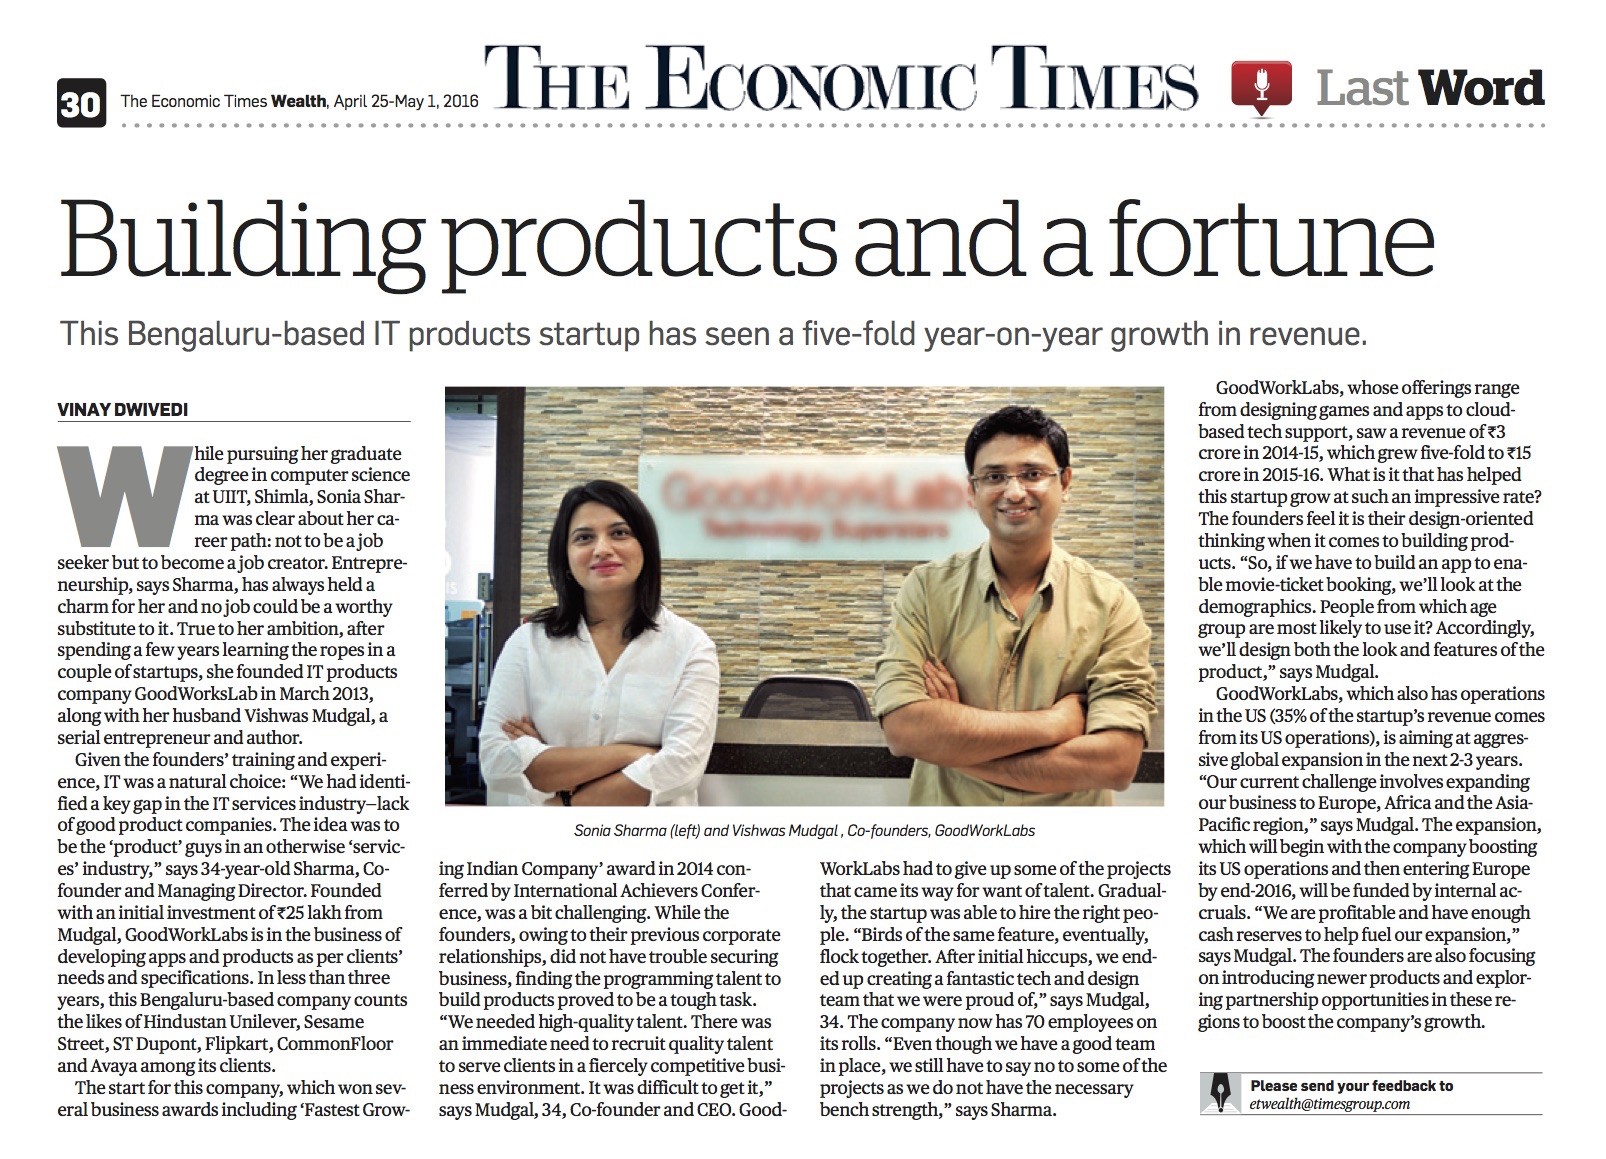 economic-times-how-goodworklabs-grew-five-times-revenue